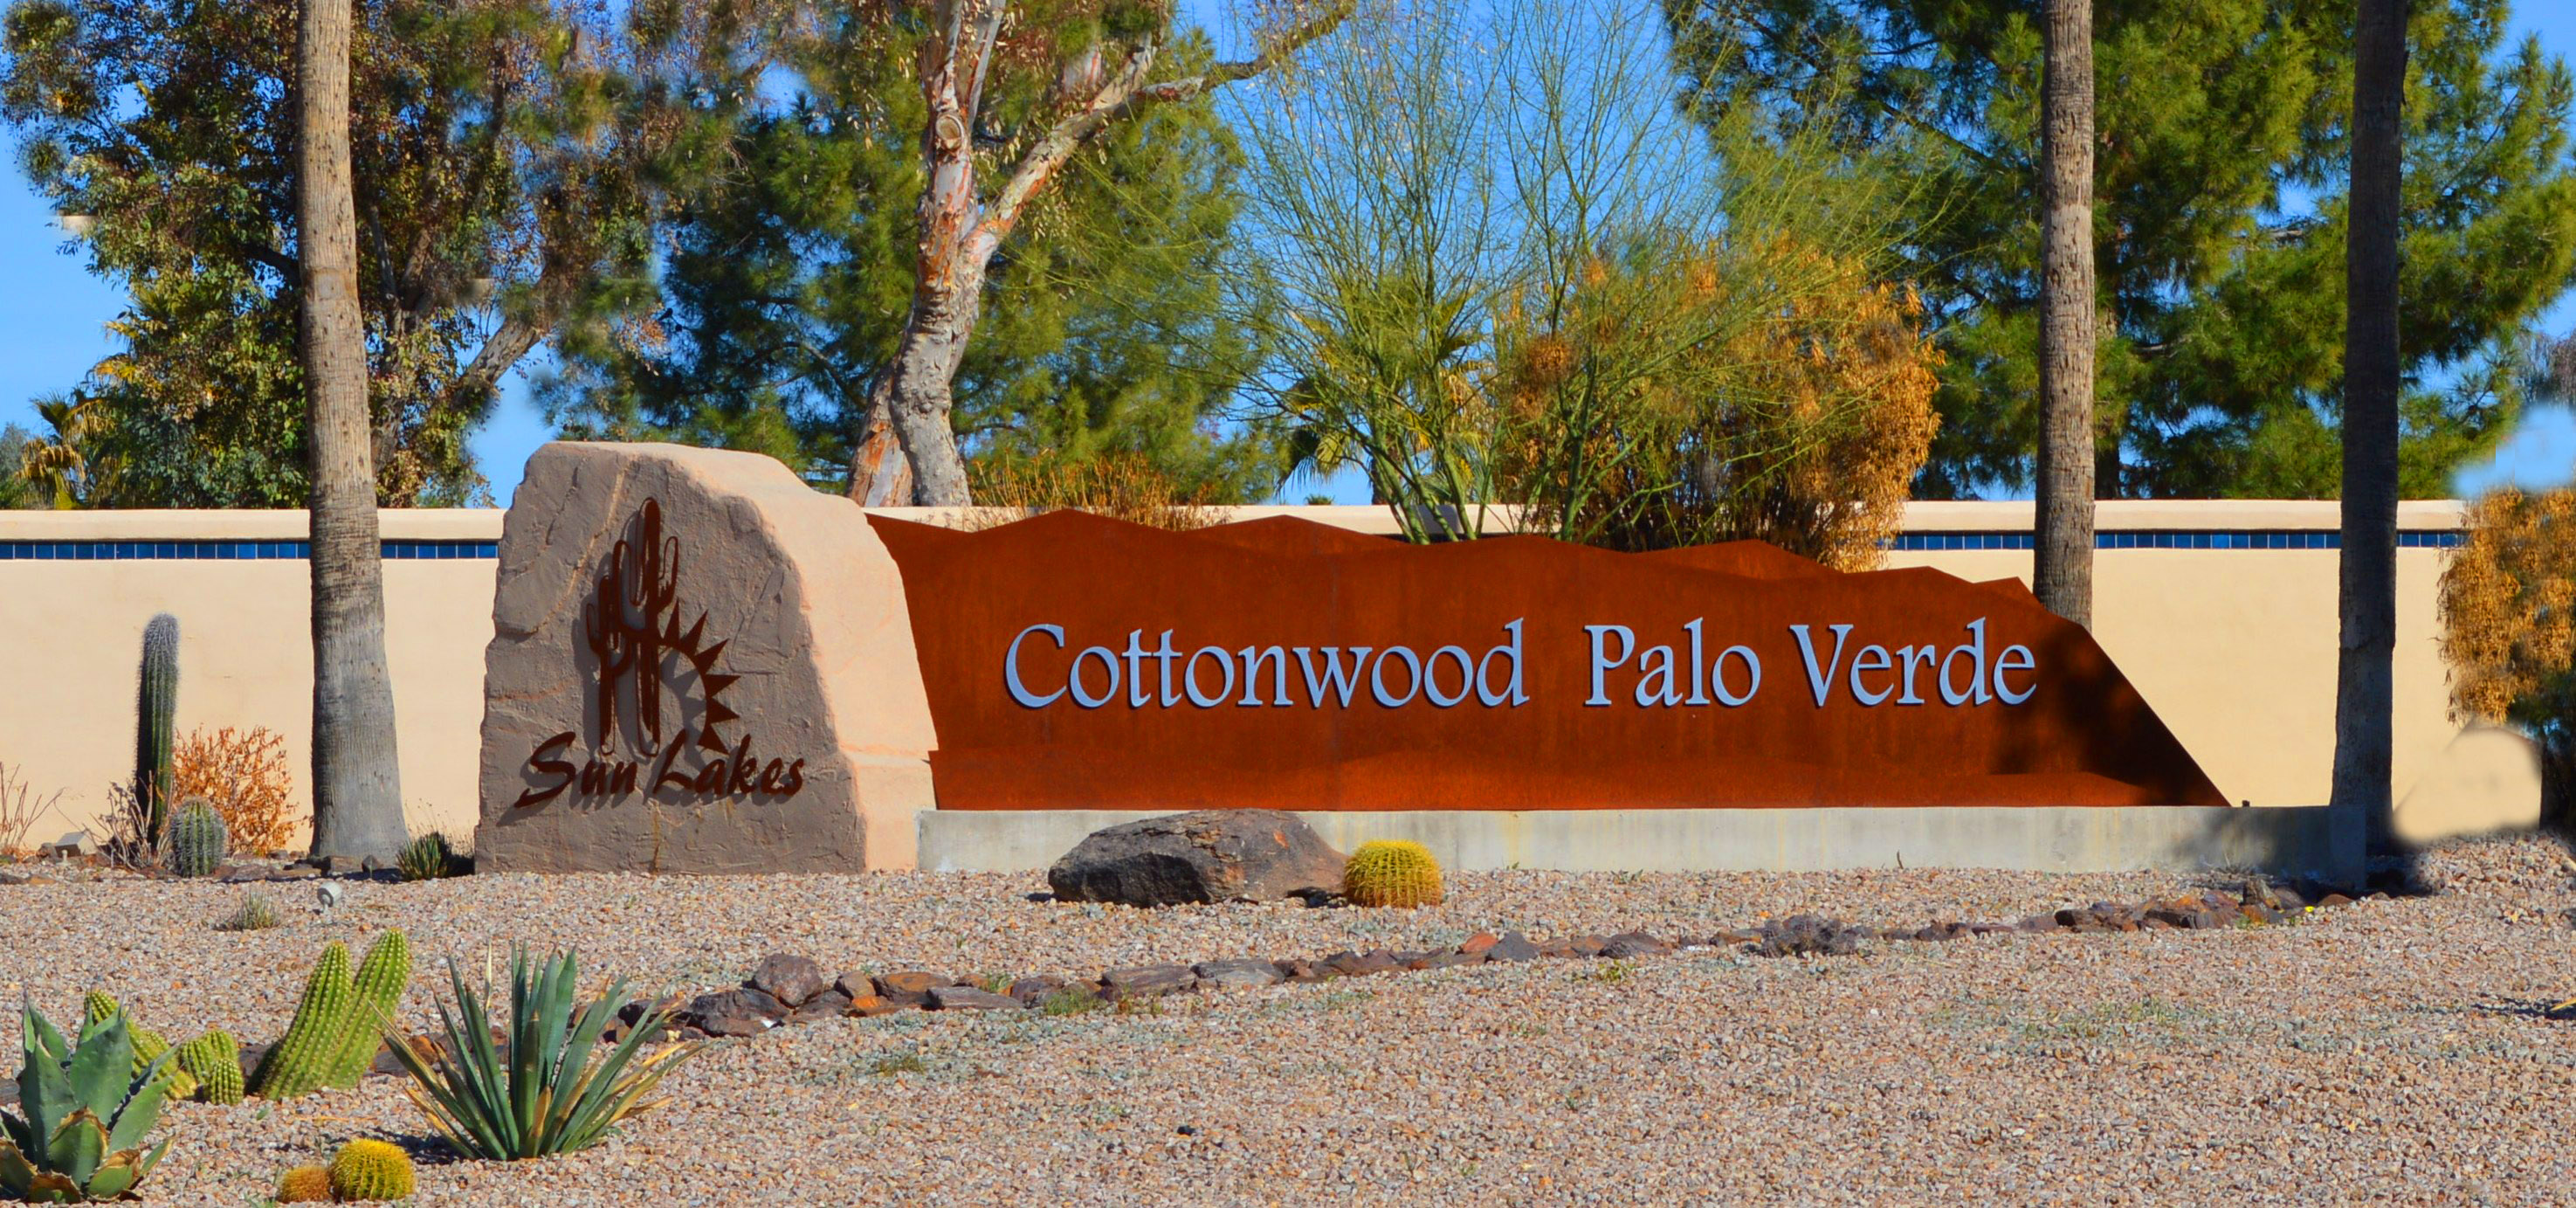 Sun Lakes Cottonwood and Palo Verde